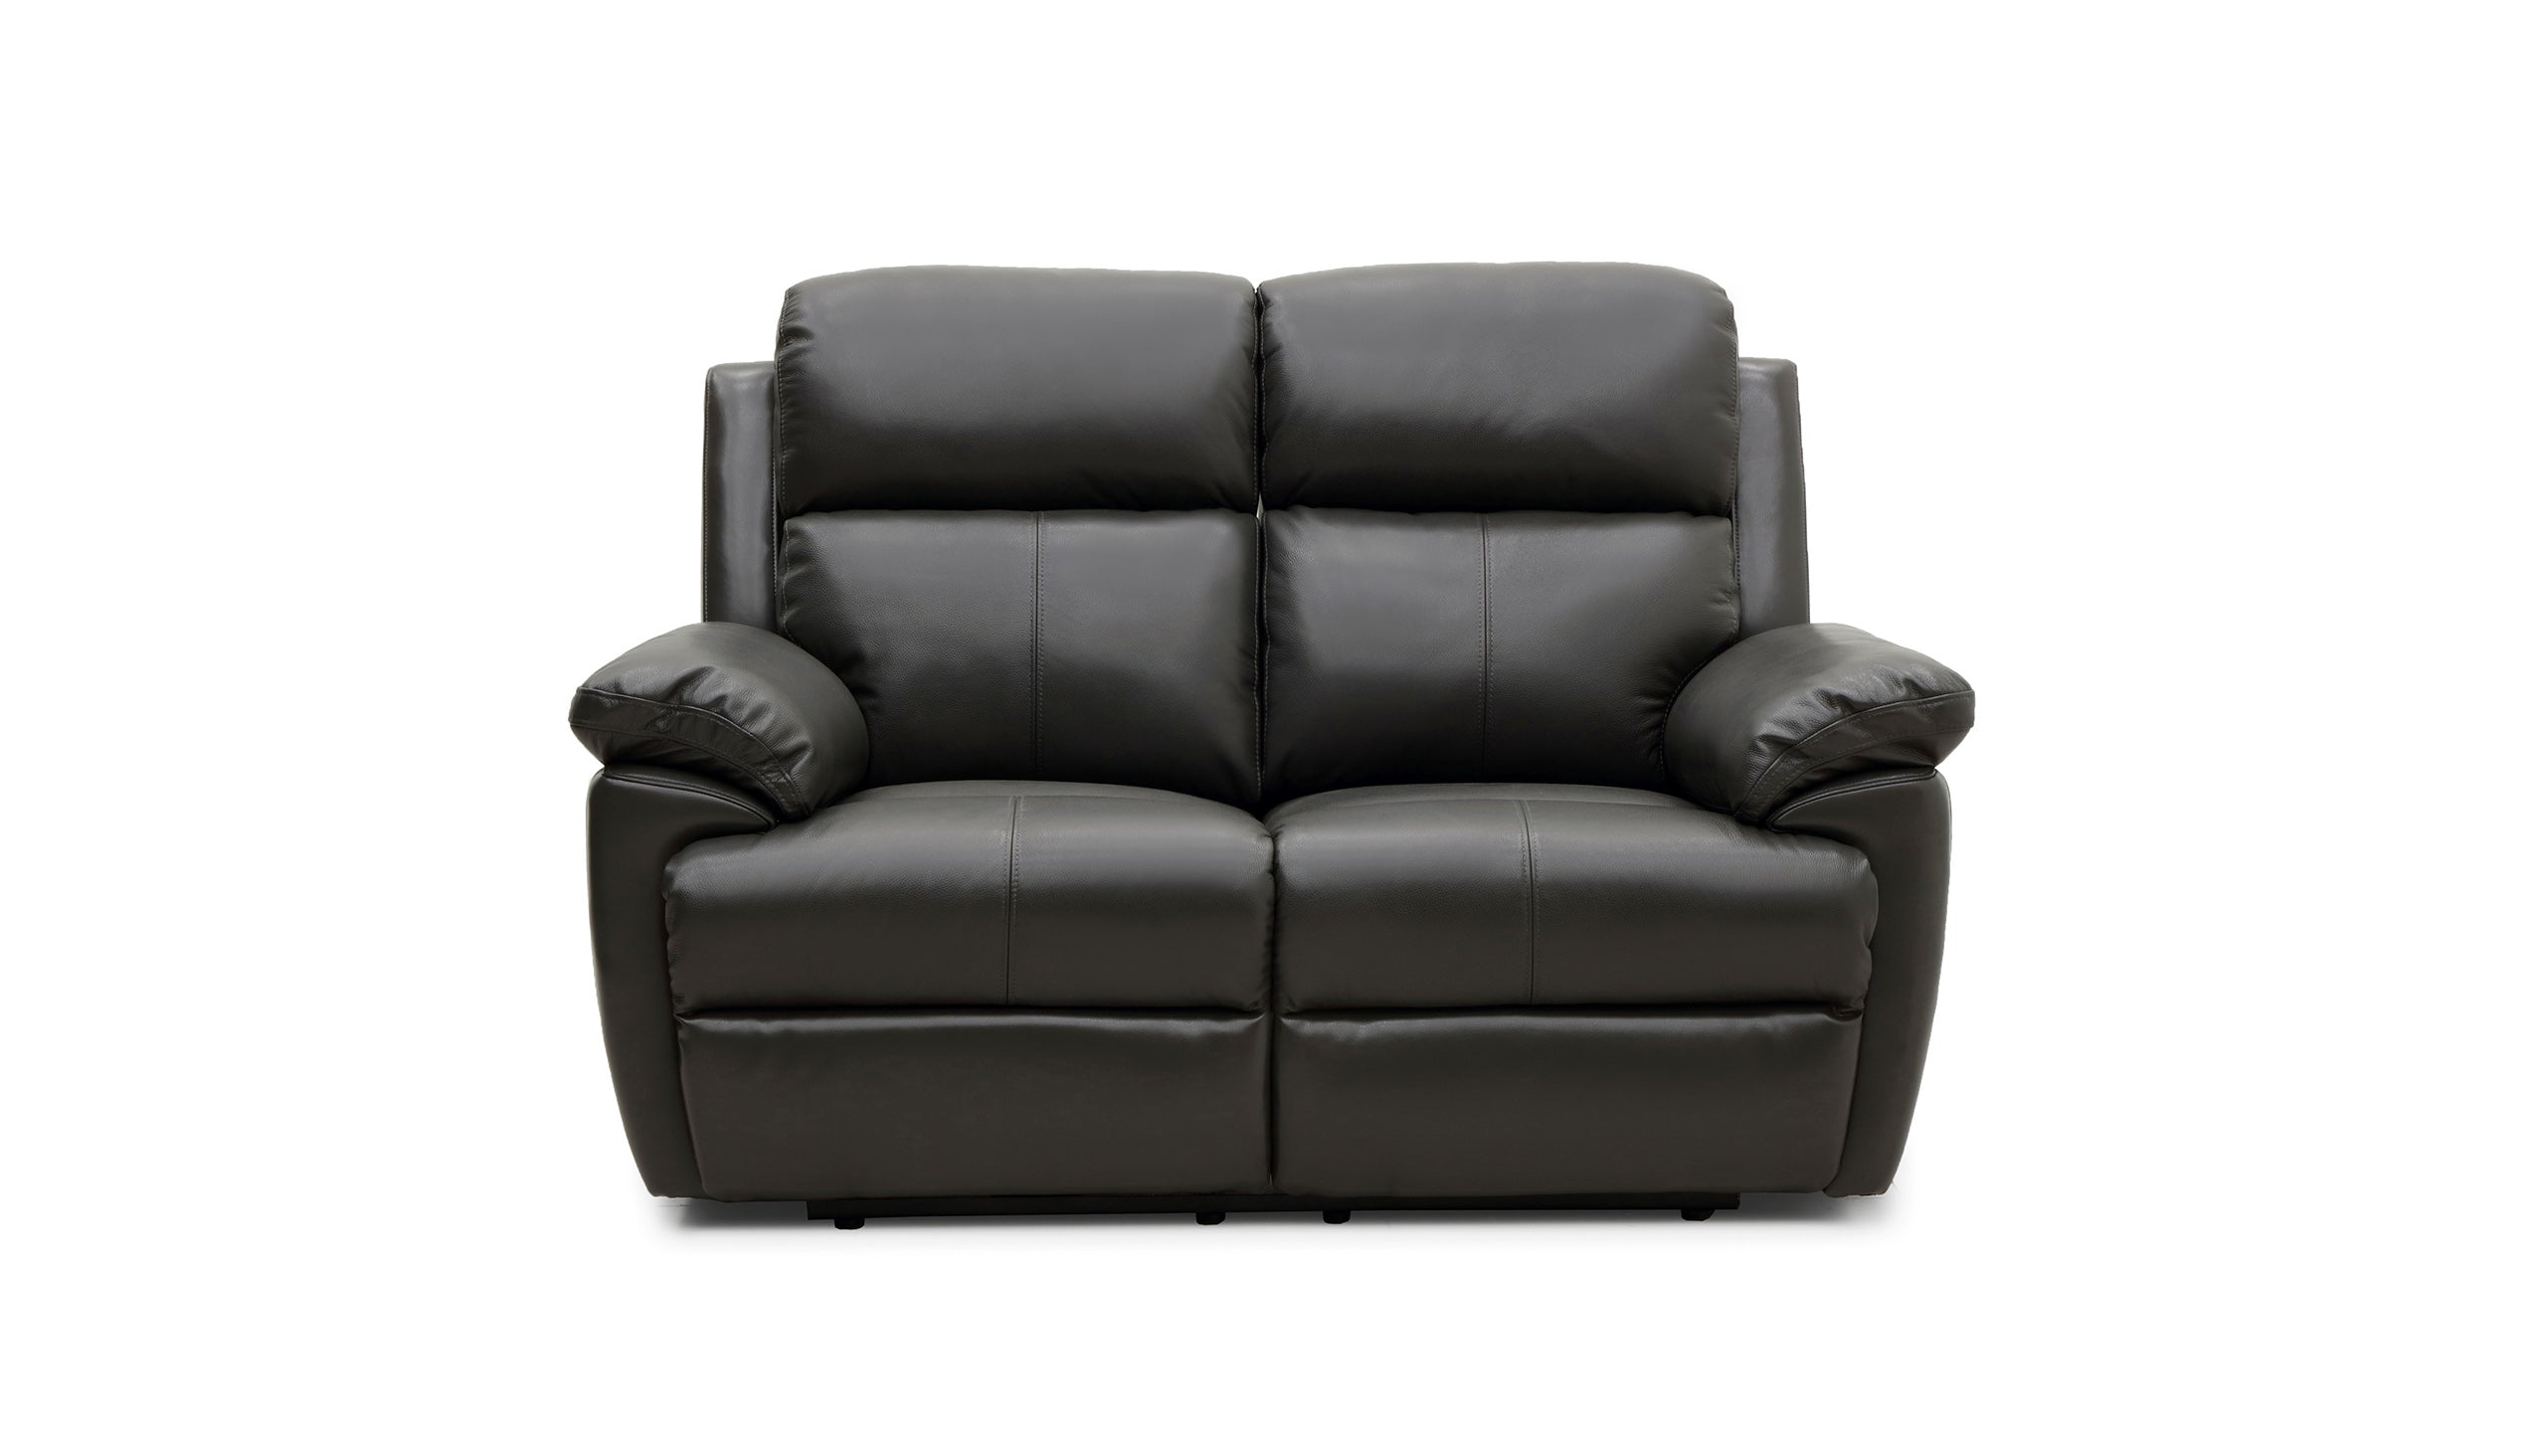 Blair 2 Seater Power Recliner Sofa with Power Headrests